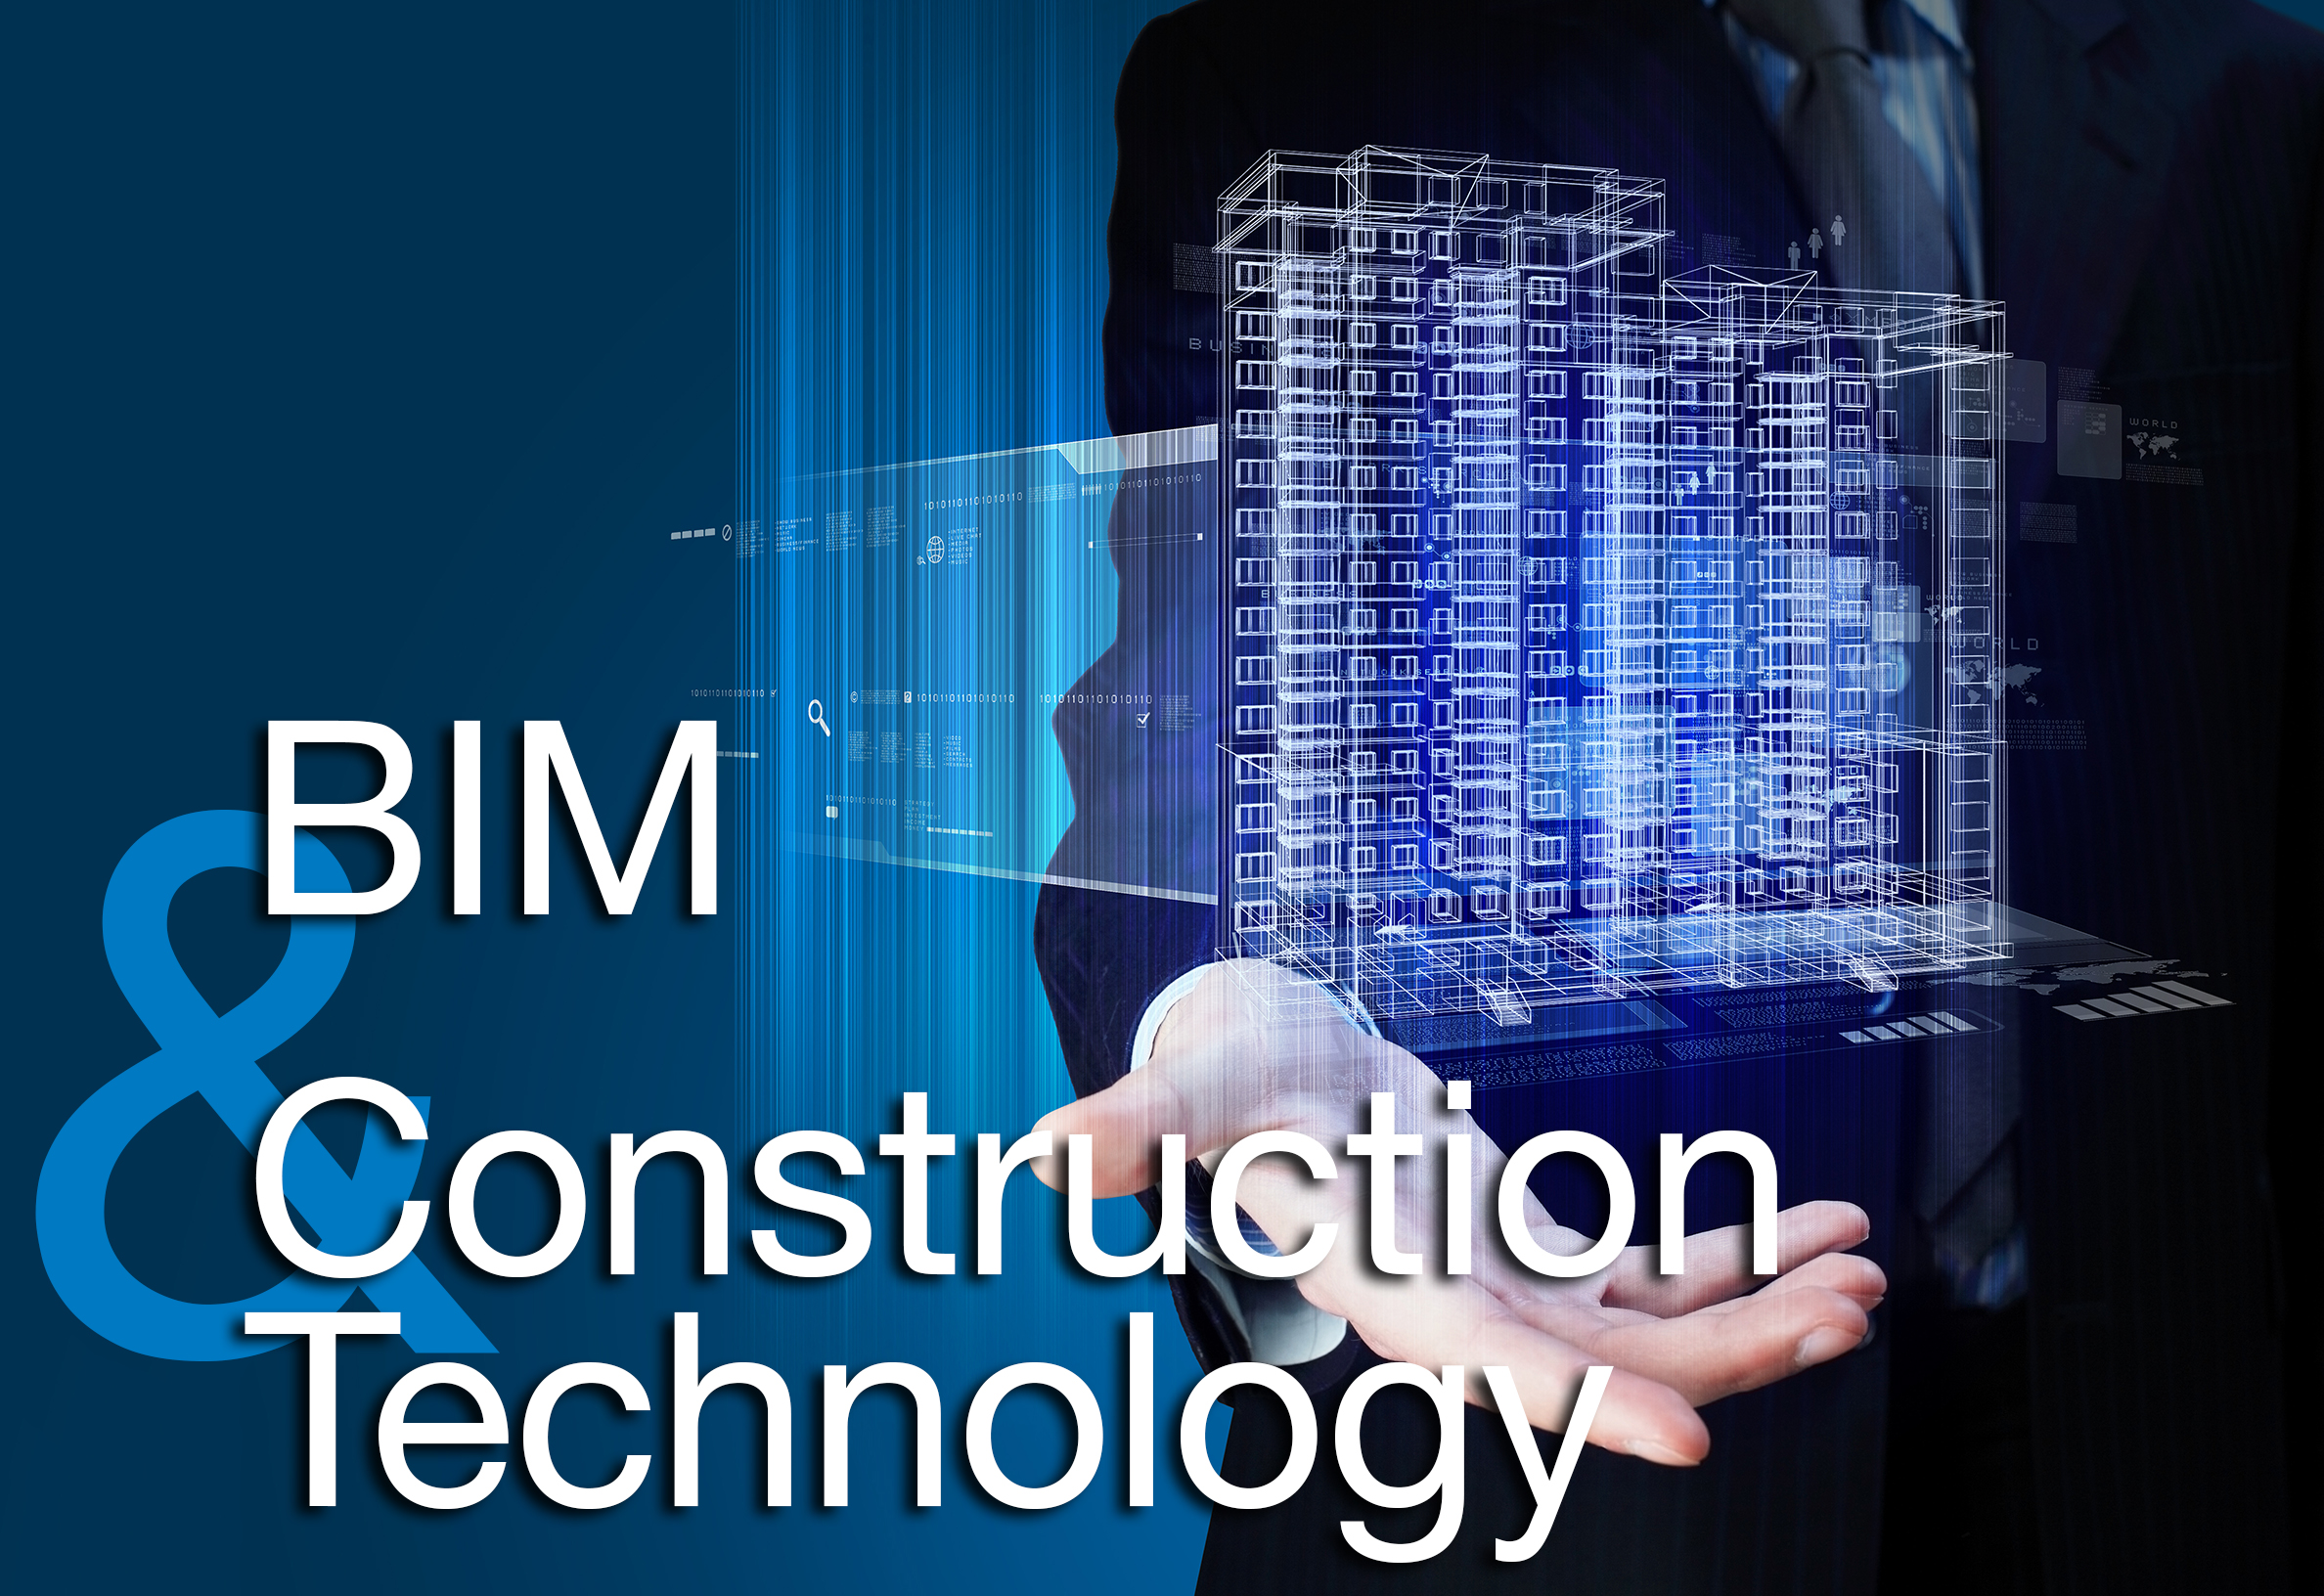 BIMConstructionTechnology